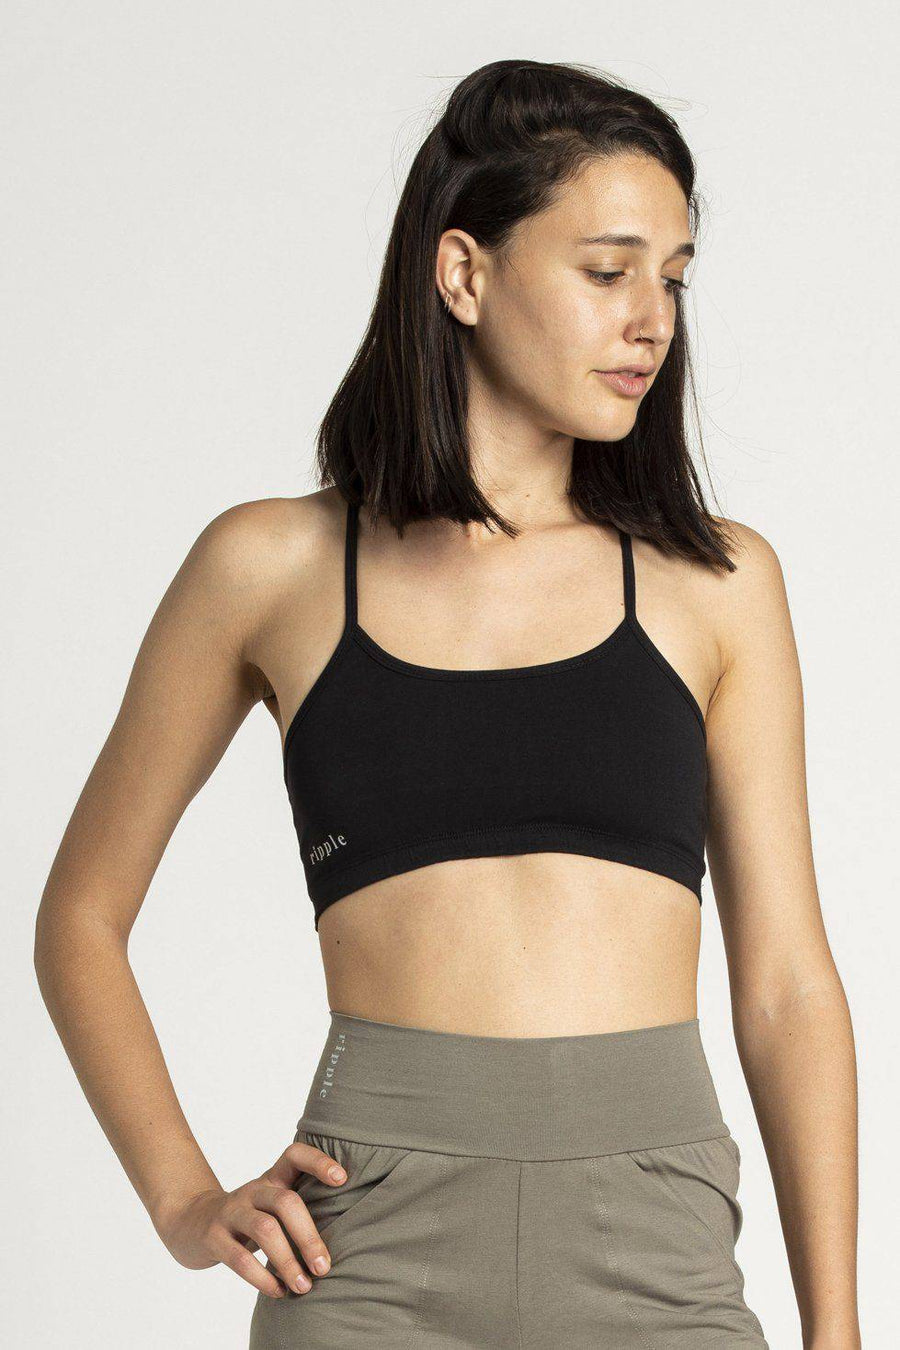 Criss Cross Bra womens clothing rippleyogawear black S